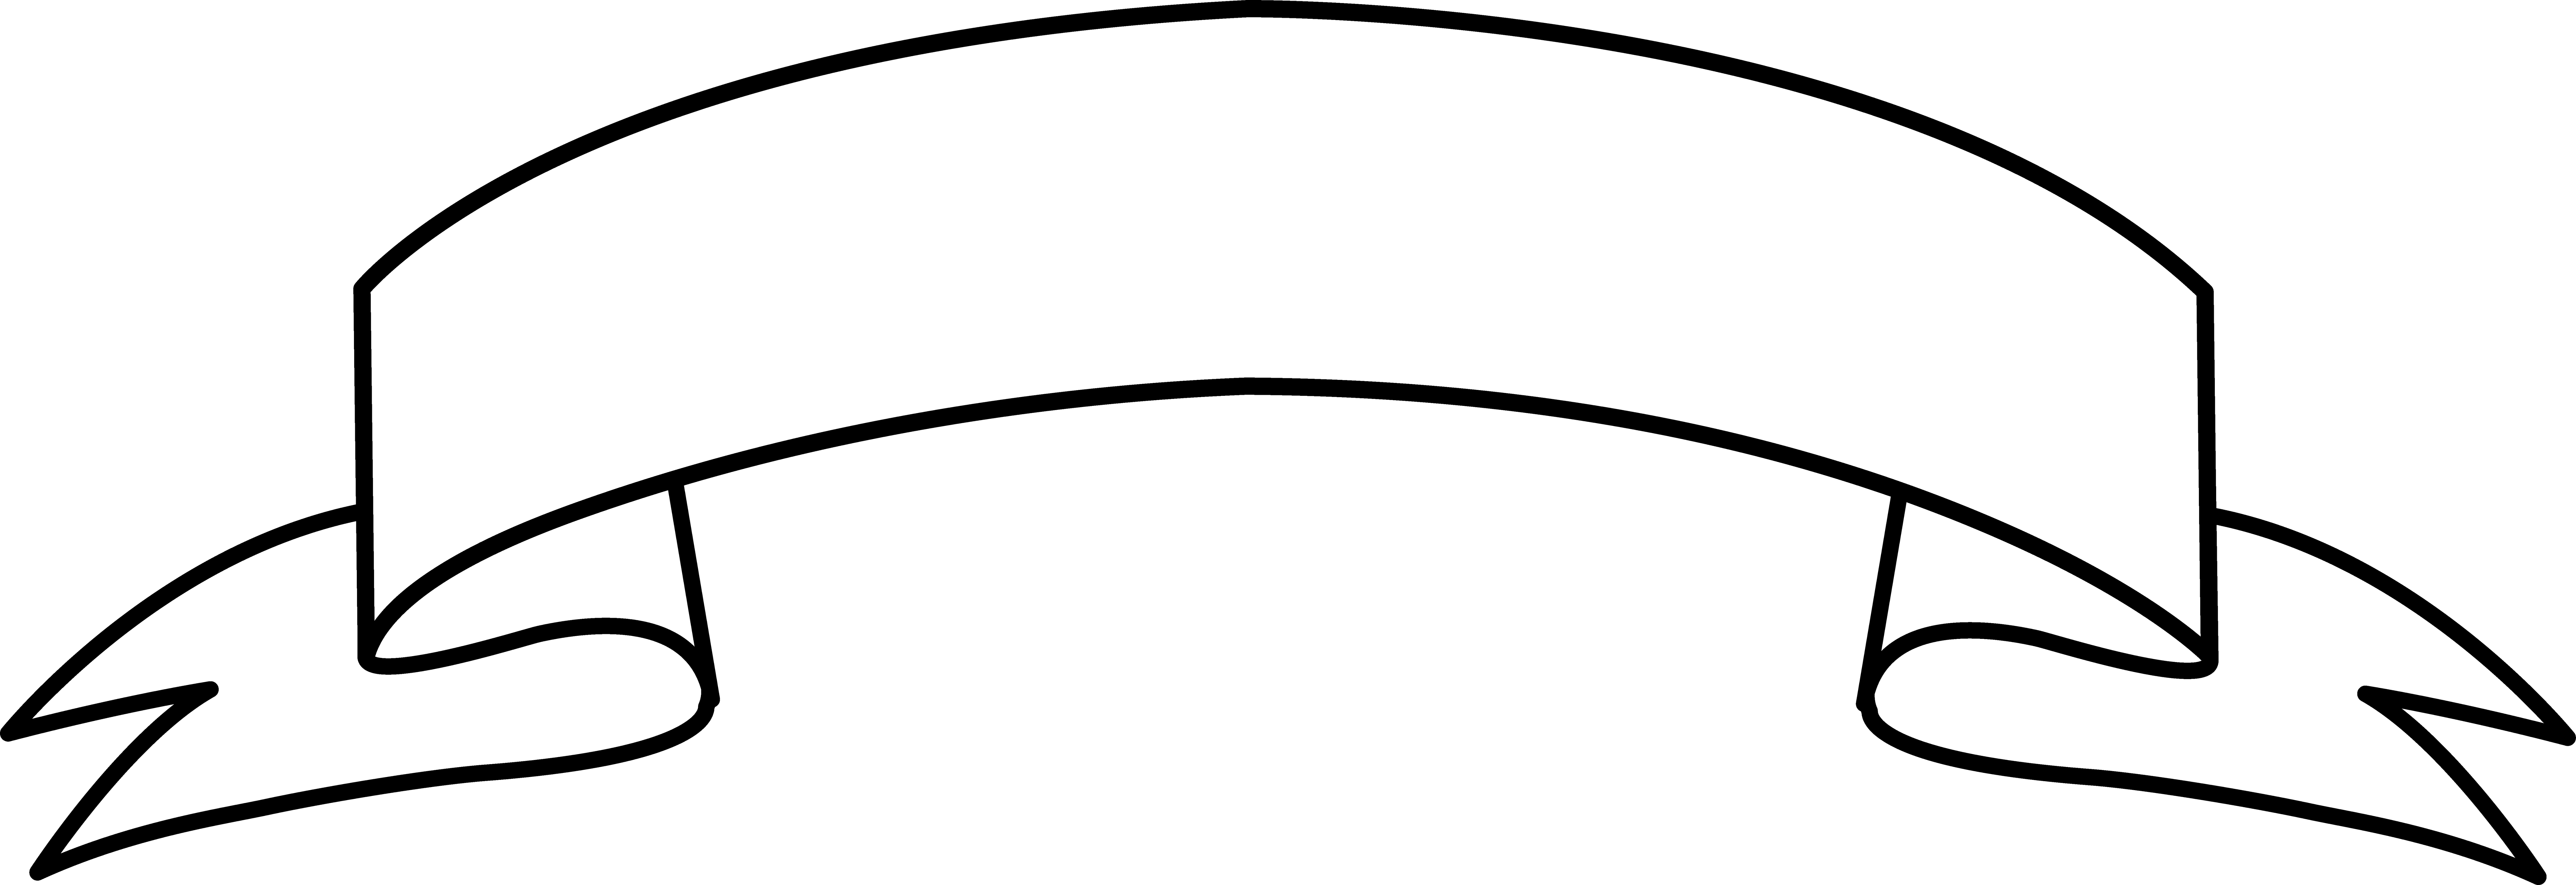 White blank banner png. Ribbon banners clipart